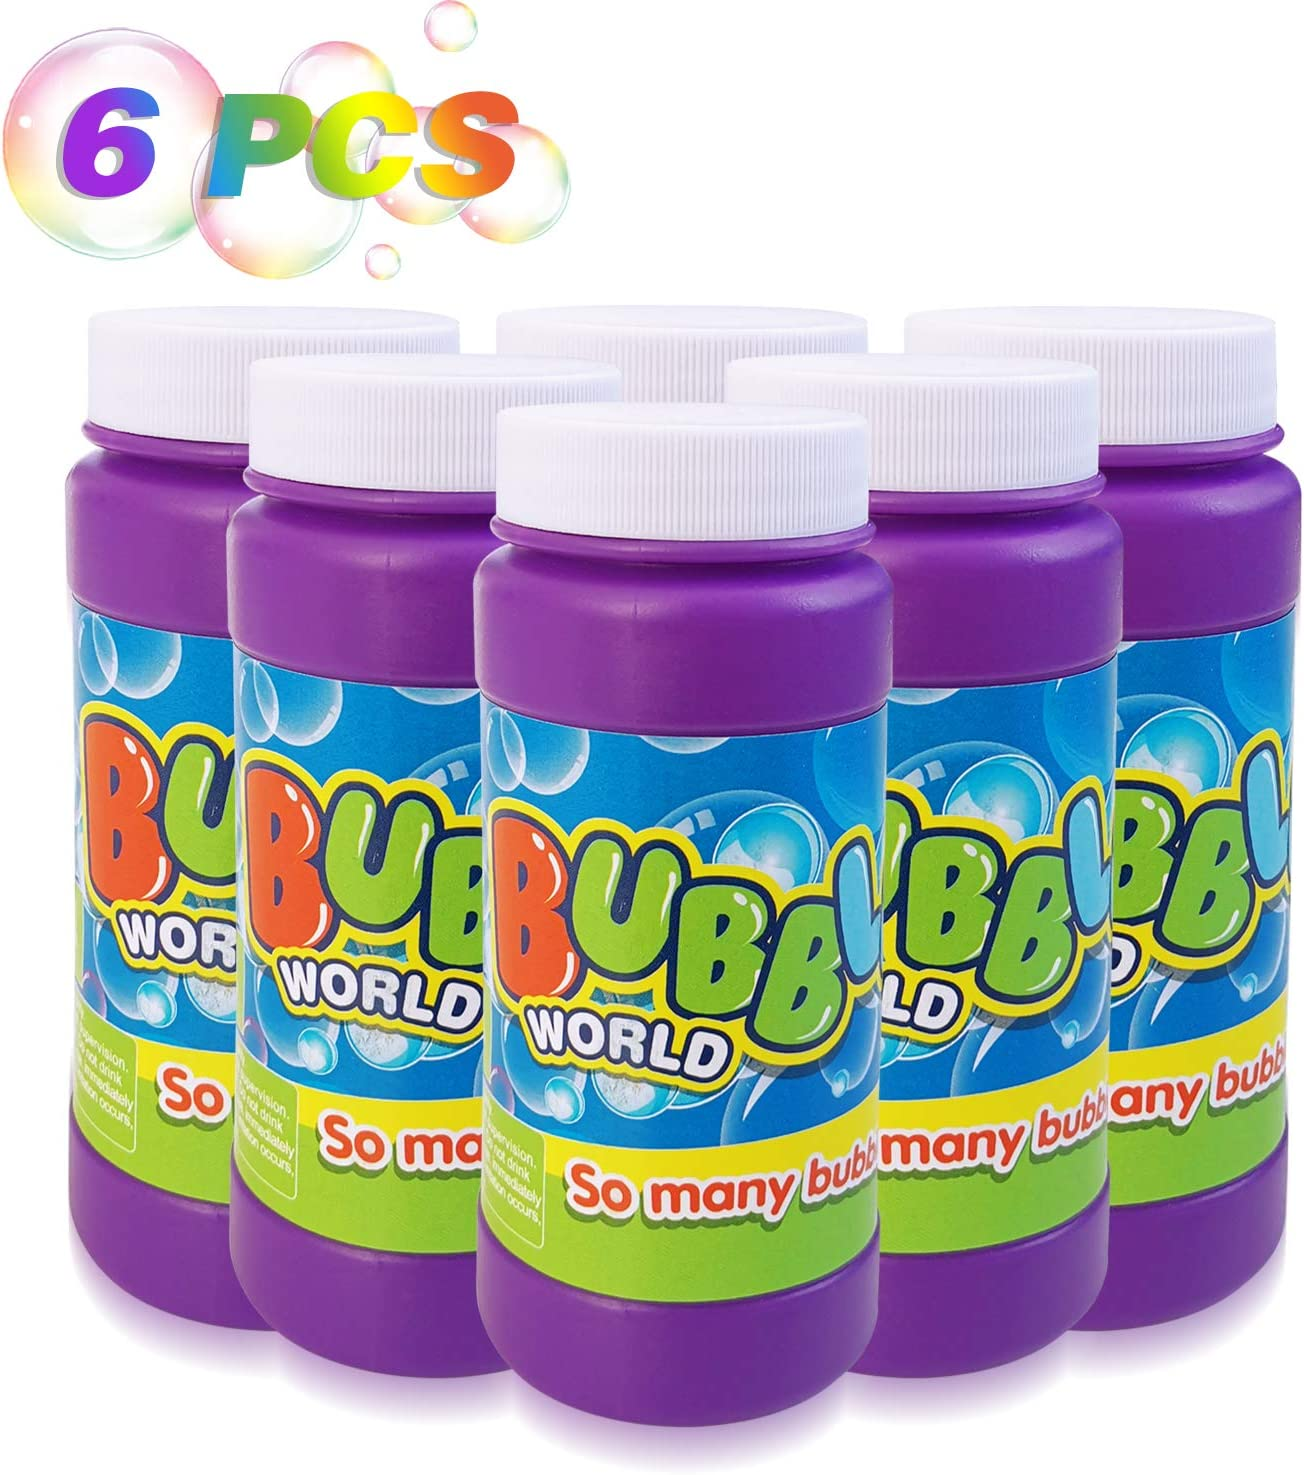 HOMOFY 6 Refill Bubble Solution 24OZ Non-Toxic Bubble Solution Liquid for Bubble Machine,Bubble Blowing Gun,Toy Wands Bubble Liquid Make Bubbles for Kids&Toddlers Parties,Weddings,Outdoor